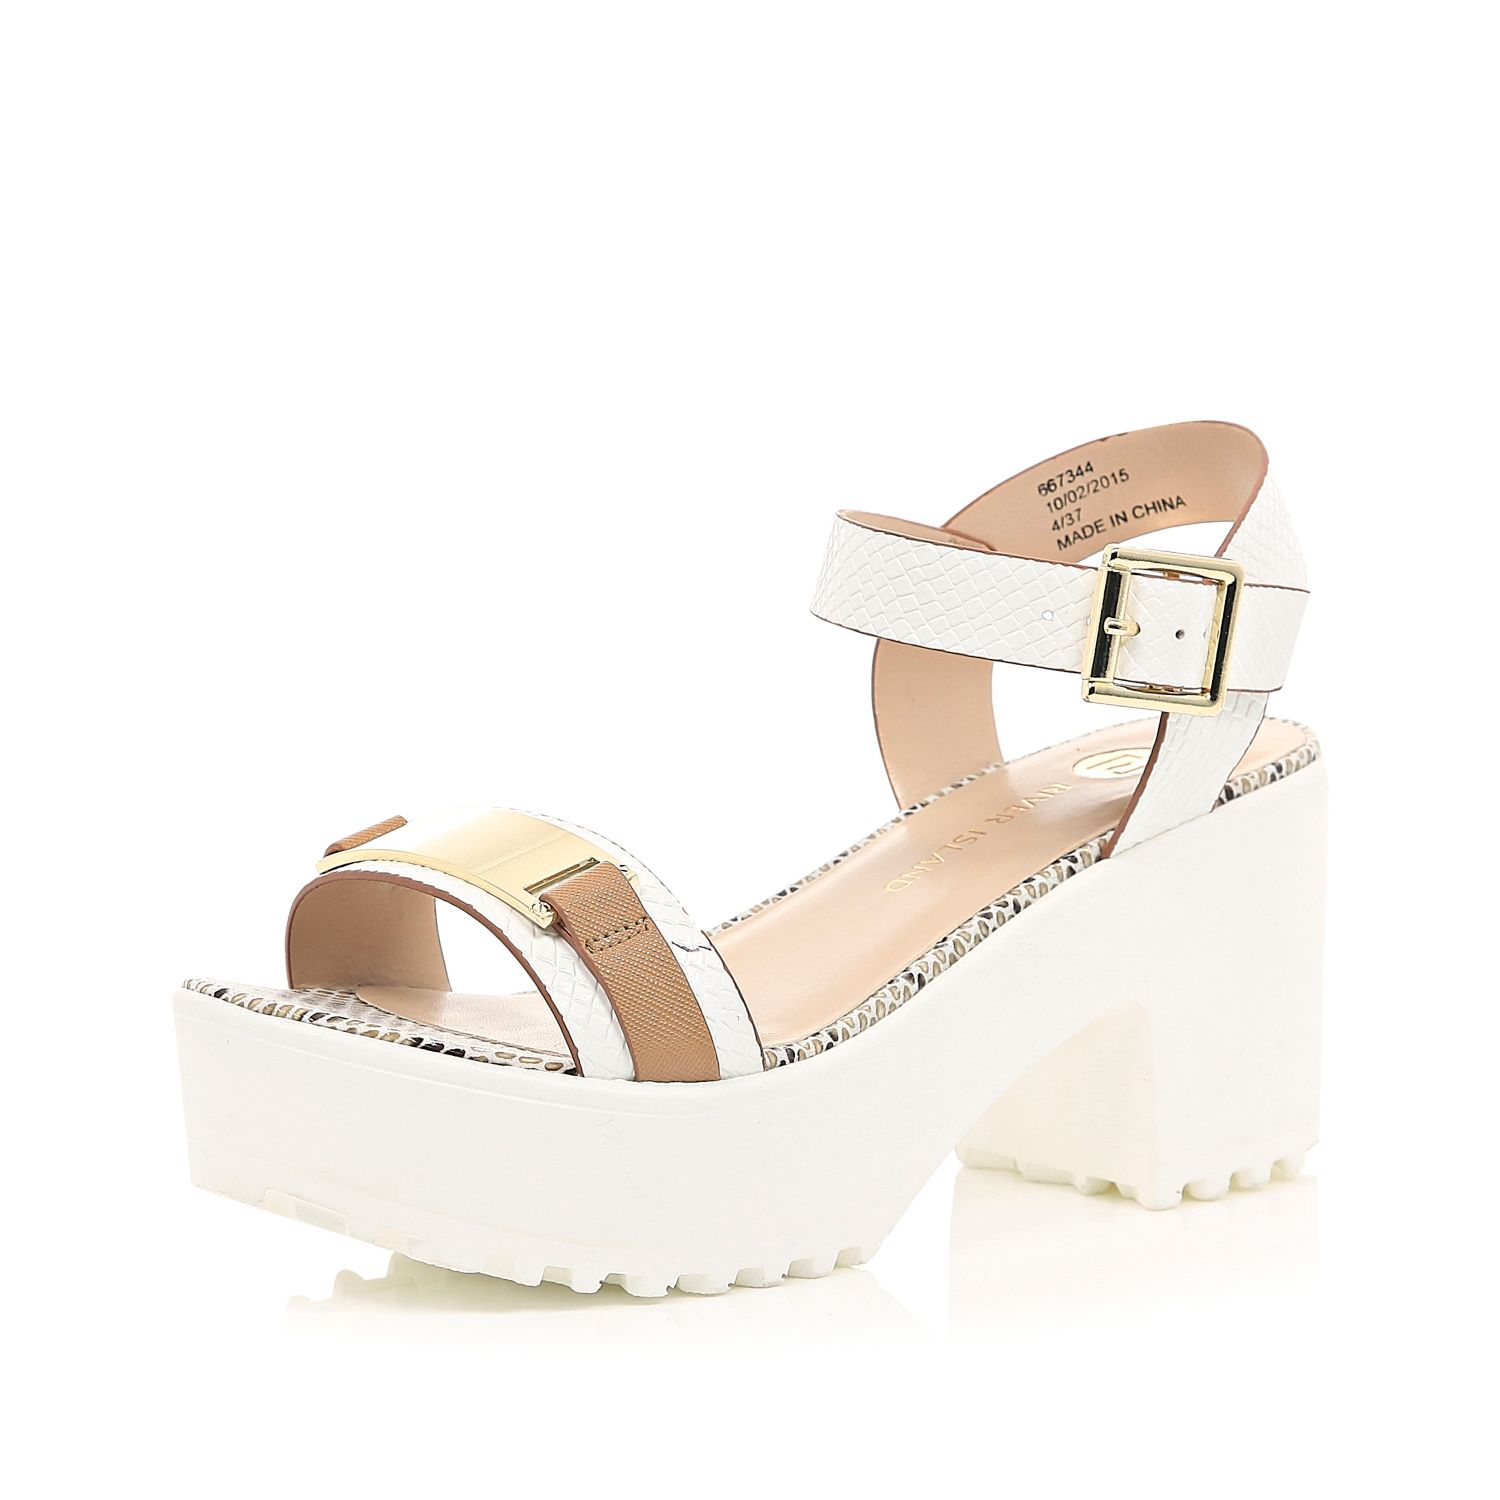 4ab8a72fc77 River Island White Chunky Cleated Sole Sandals in White - Lyst